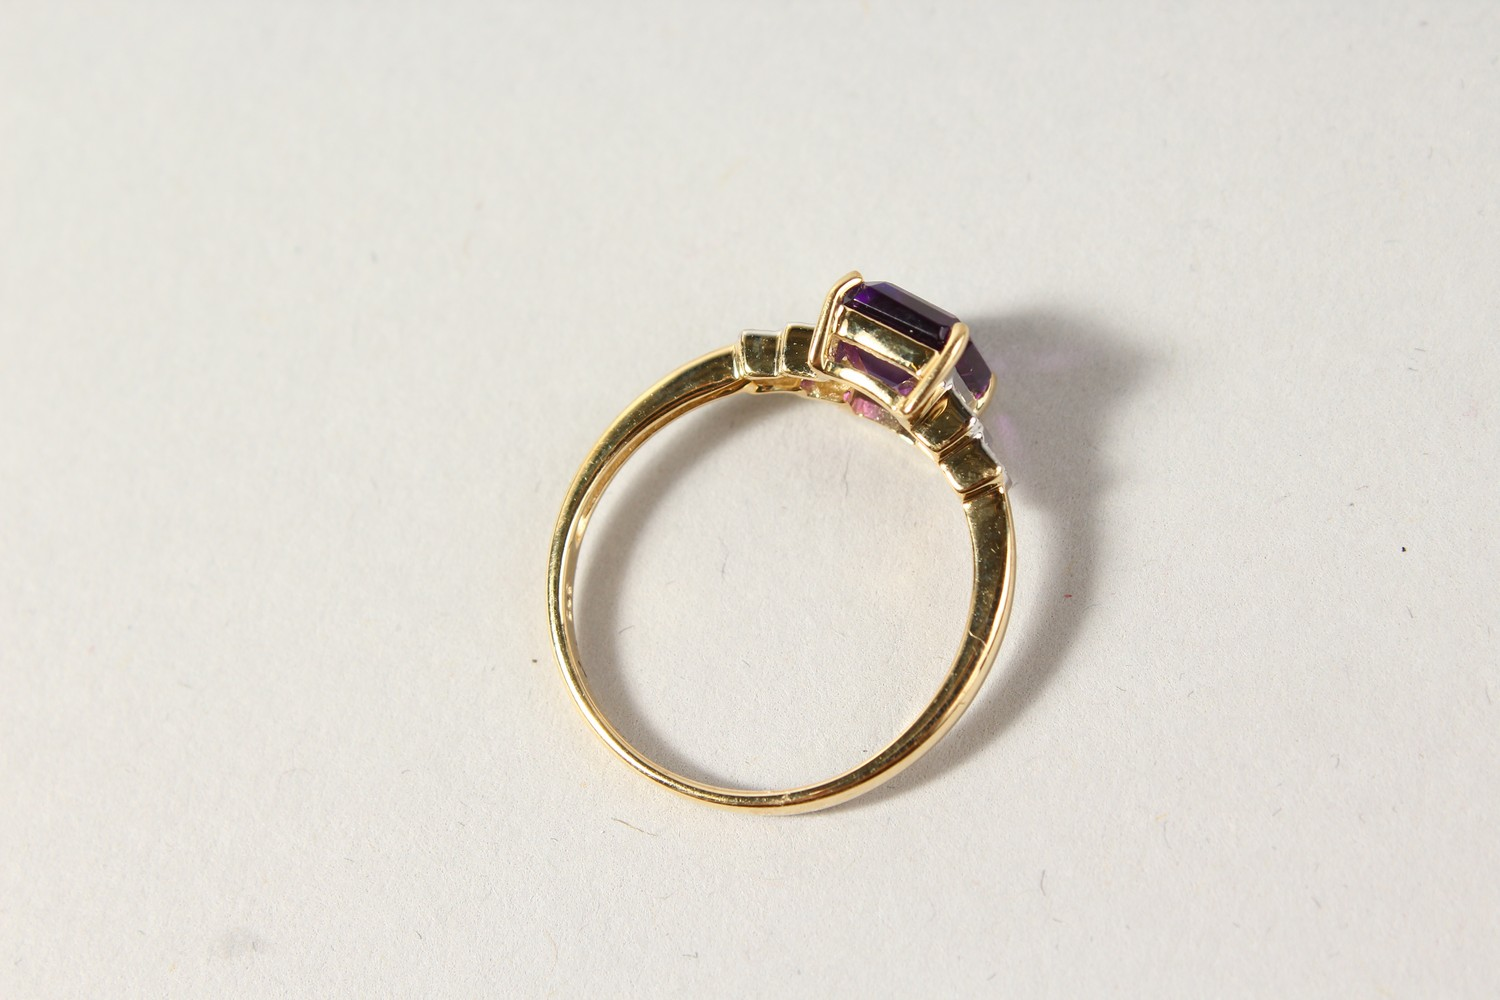 Lot 1763 - A 9CT GOLD EMERALD CUT AMETHYST AND DIAMOND RING.